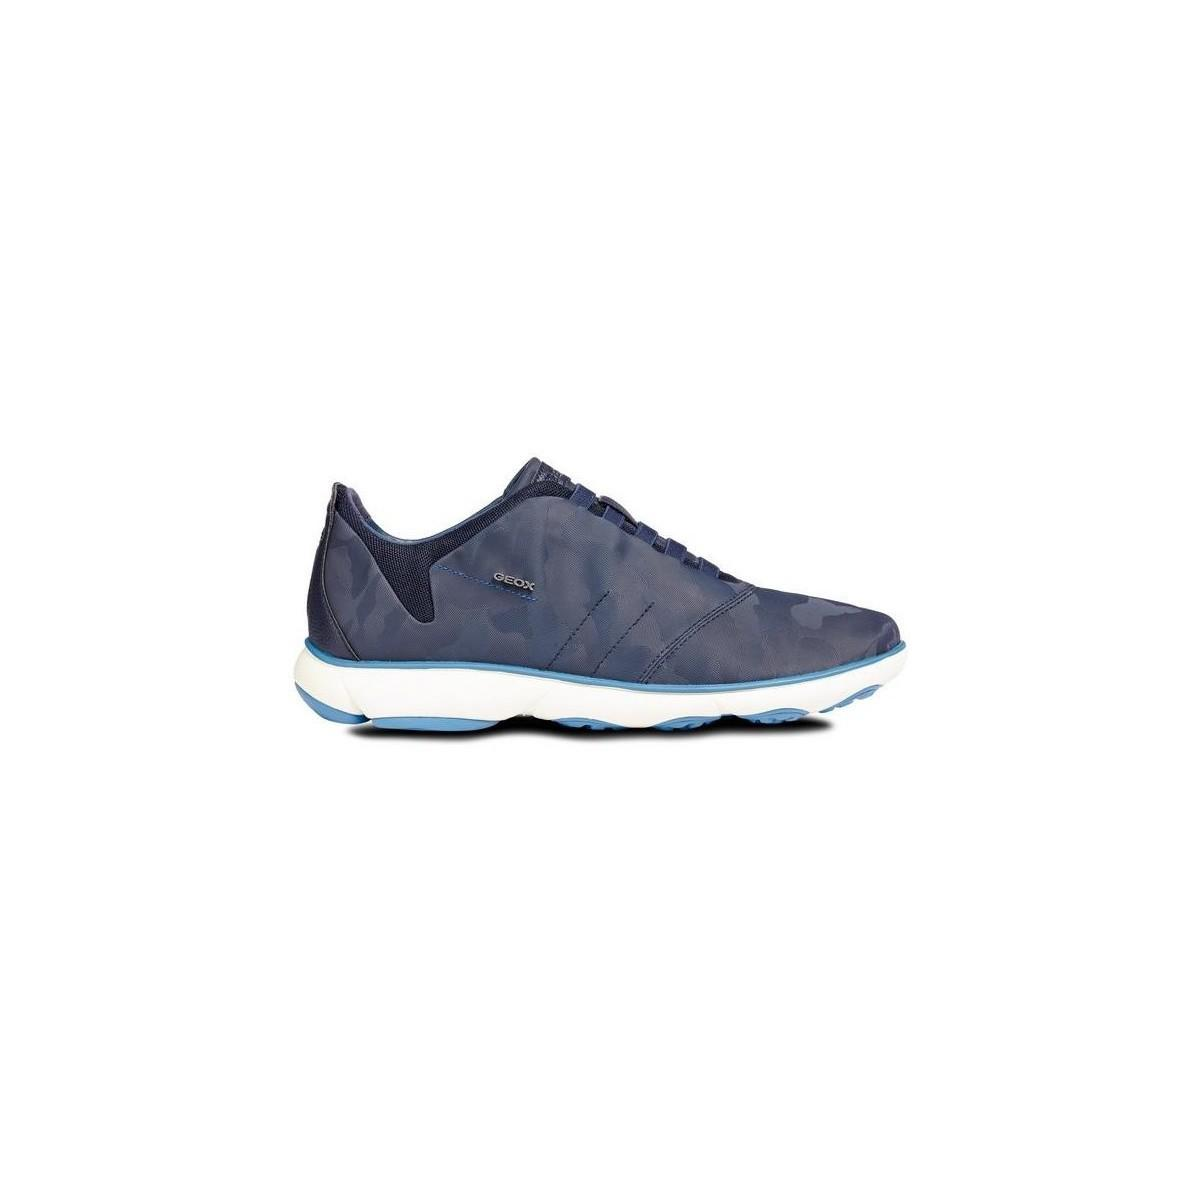 e7787317575 Geox Nebula Man Men s Shoes (trainers) In Multicolour in Blue for ...